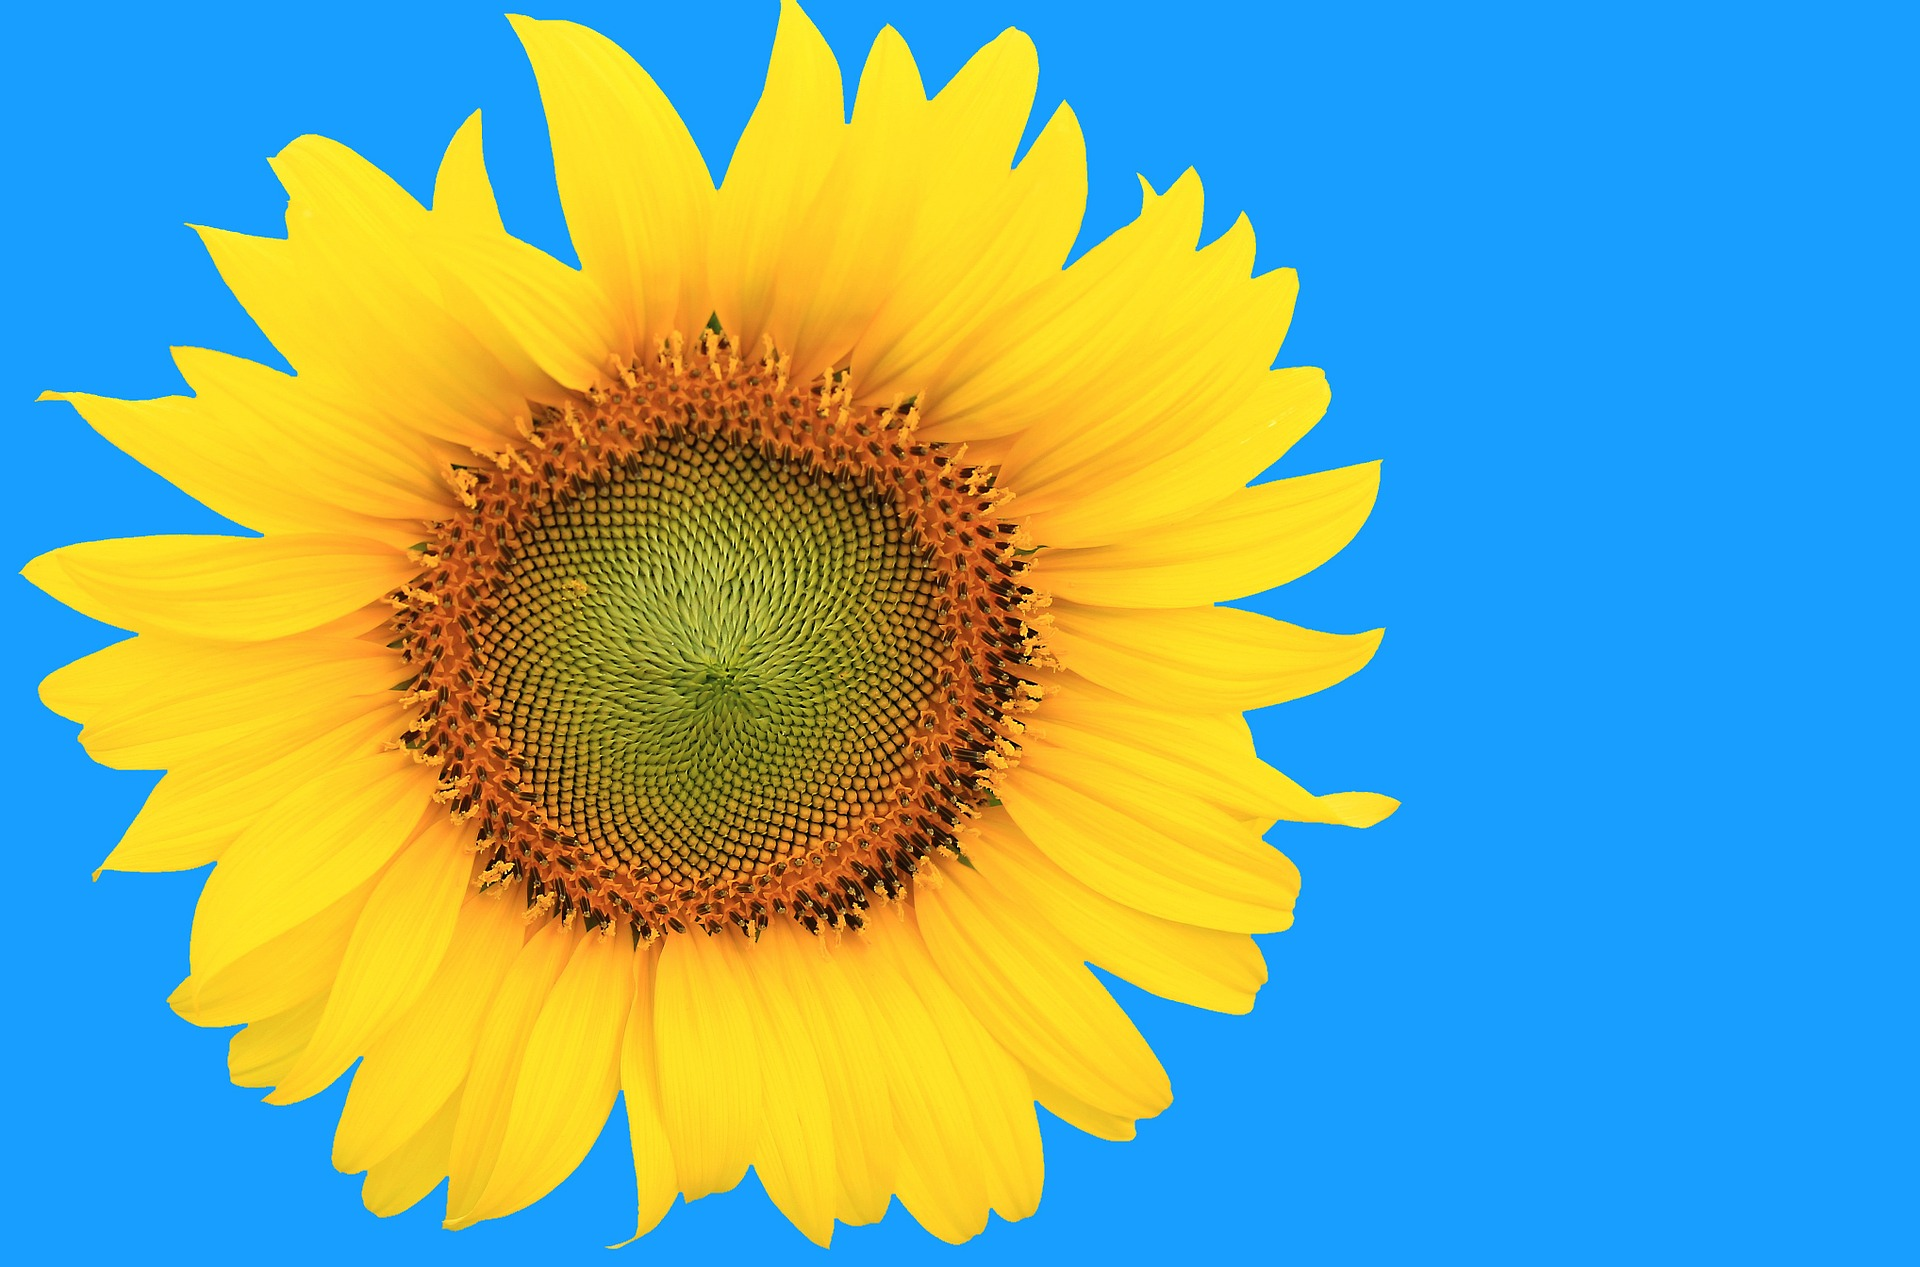 sunflower-804669_1920